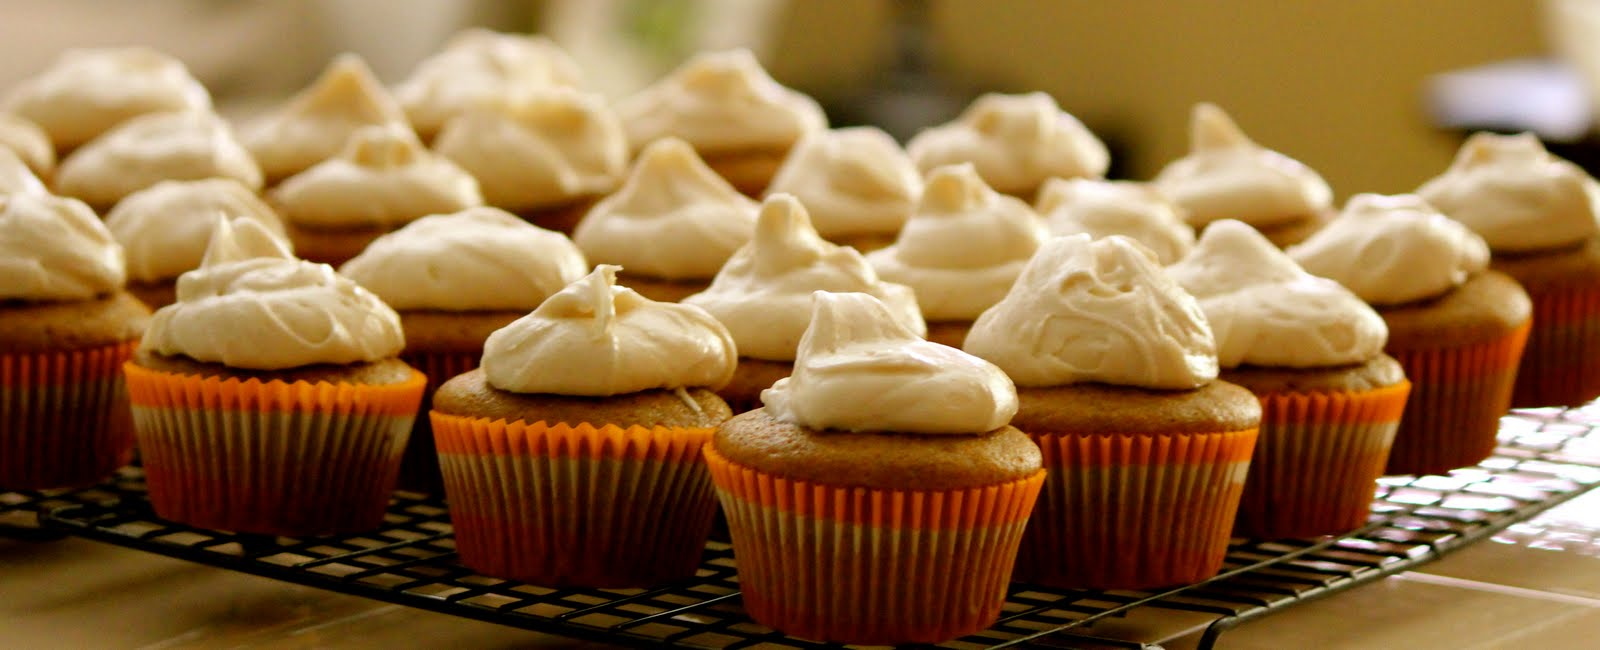 Pumpkin Ginger Cupcakes With Ginger Cream Cheese Frosting Recipes ...